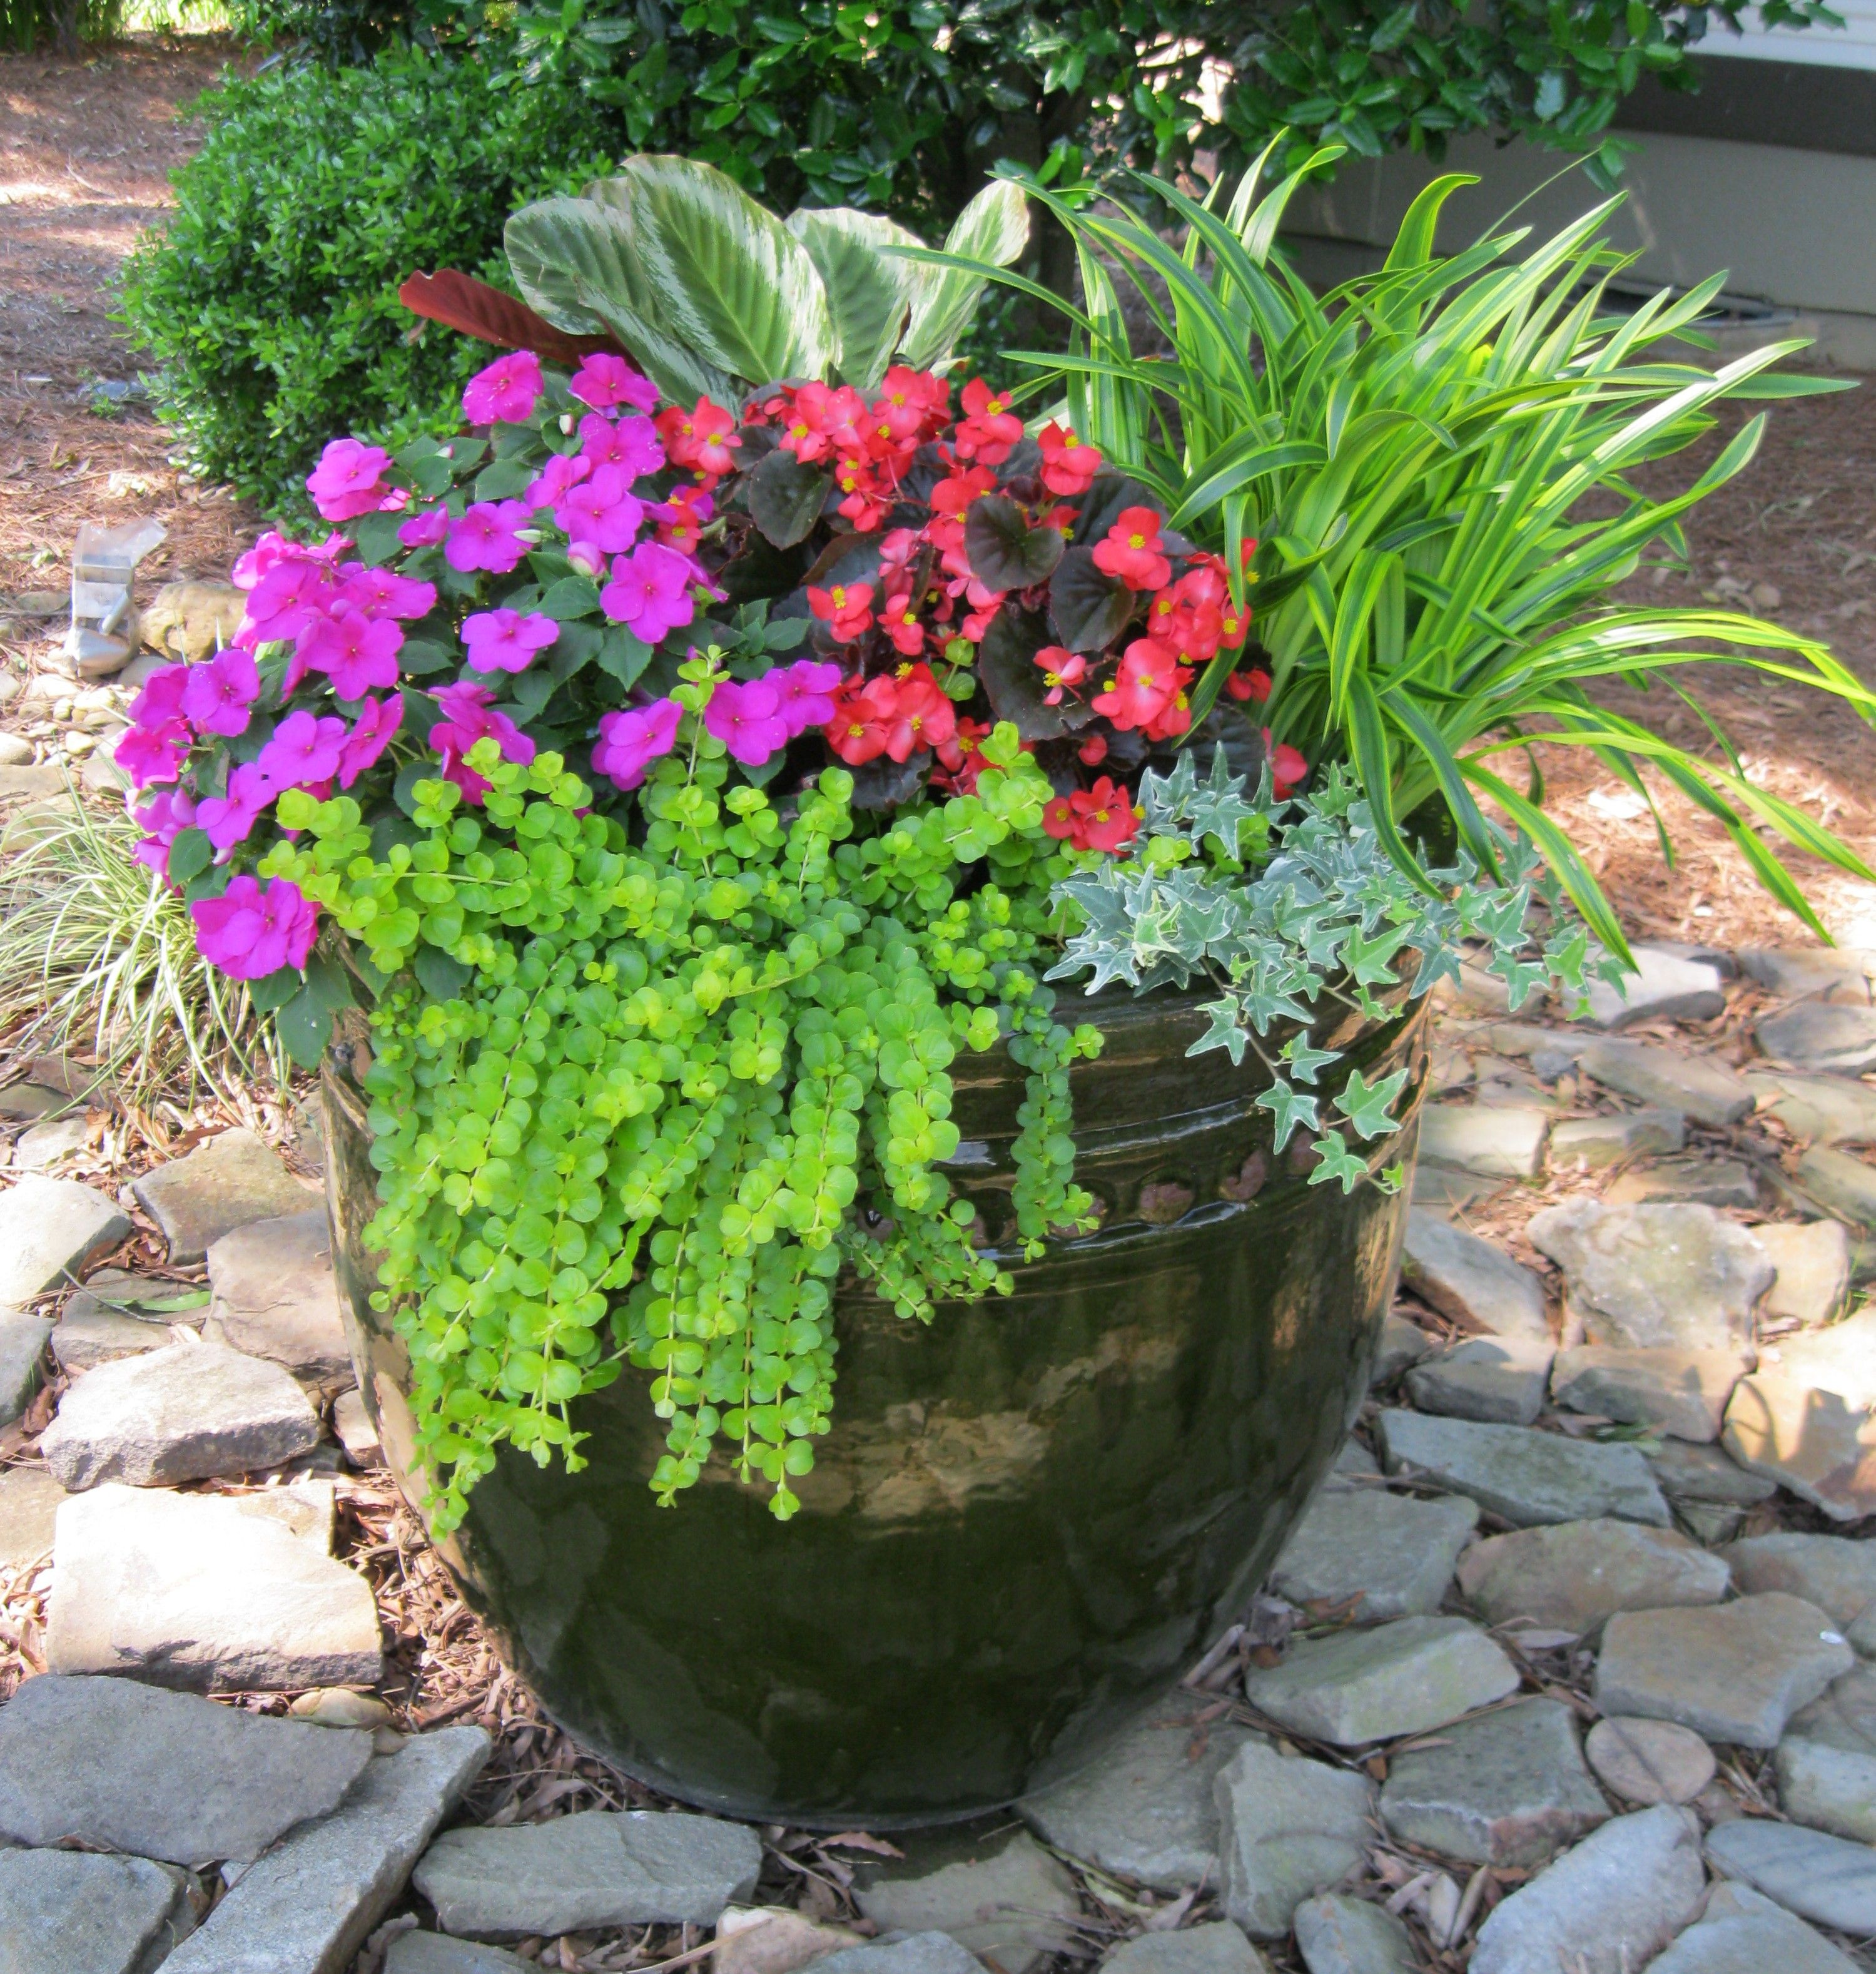 My front yard container garden garden ideas pinterest for Container gardening ideas